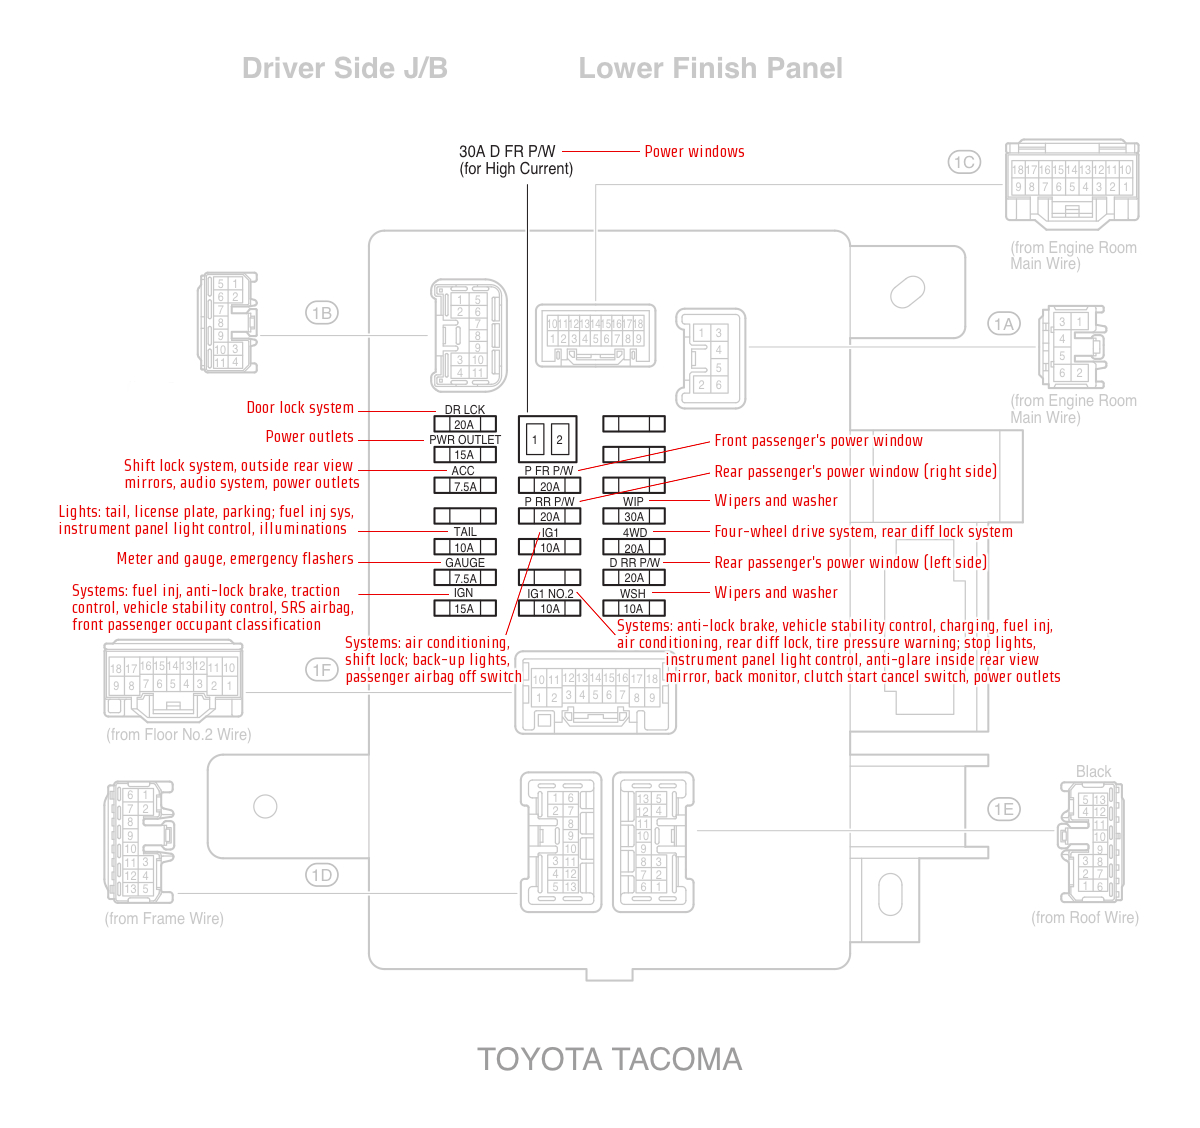 06 Tacoma Trailer Wiring Diagram | Trailer Wiring Diagram on